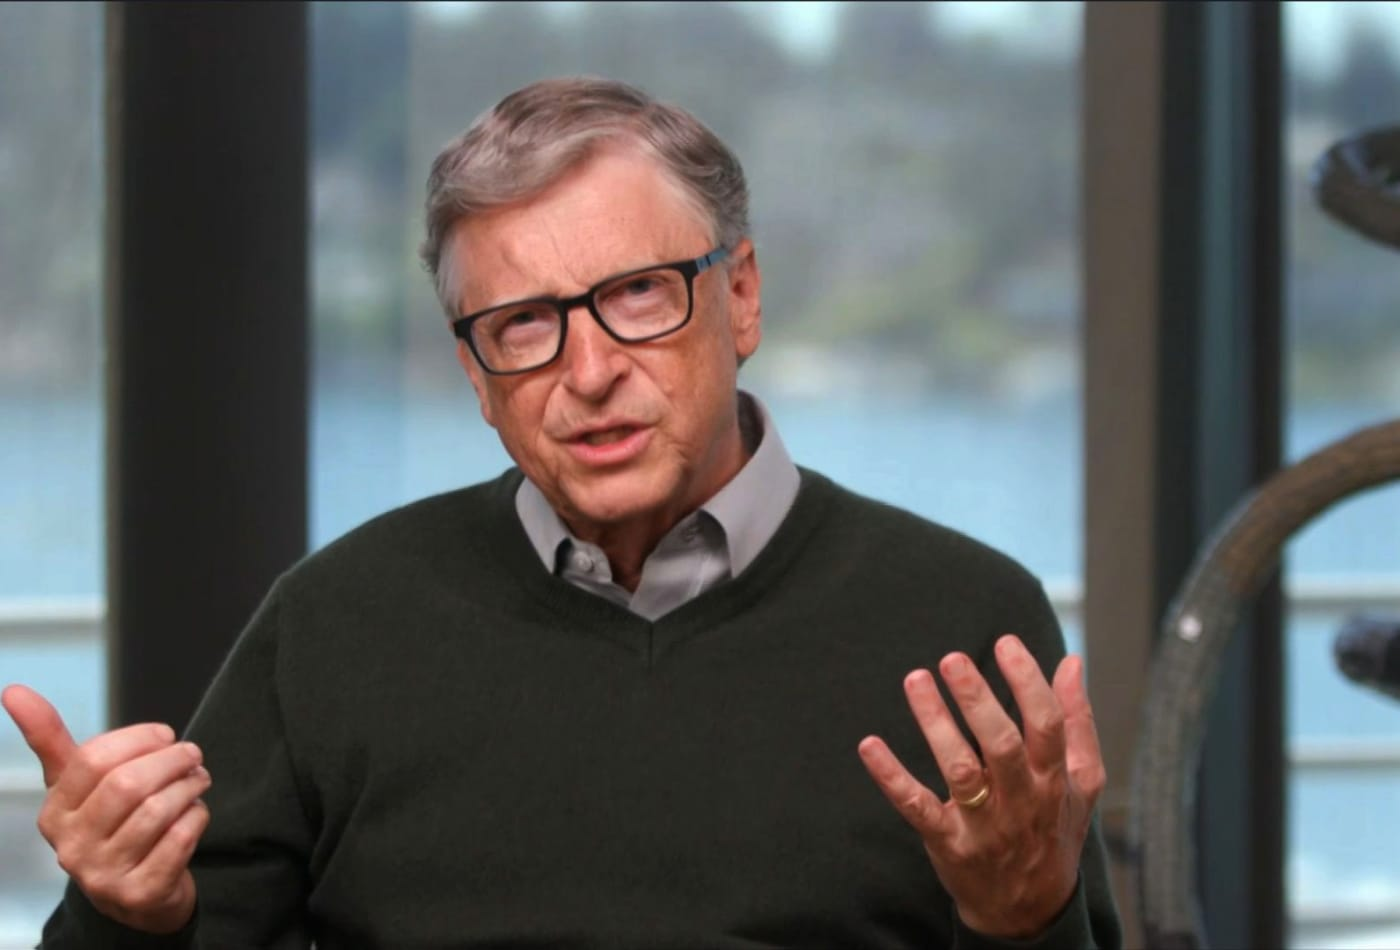 Bill Gates: 'Be open to ideas that seem wild' to fight climate change